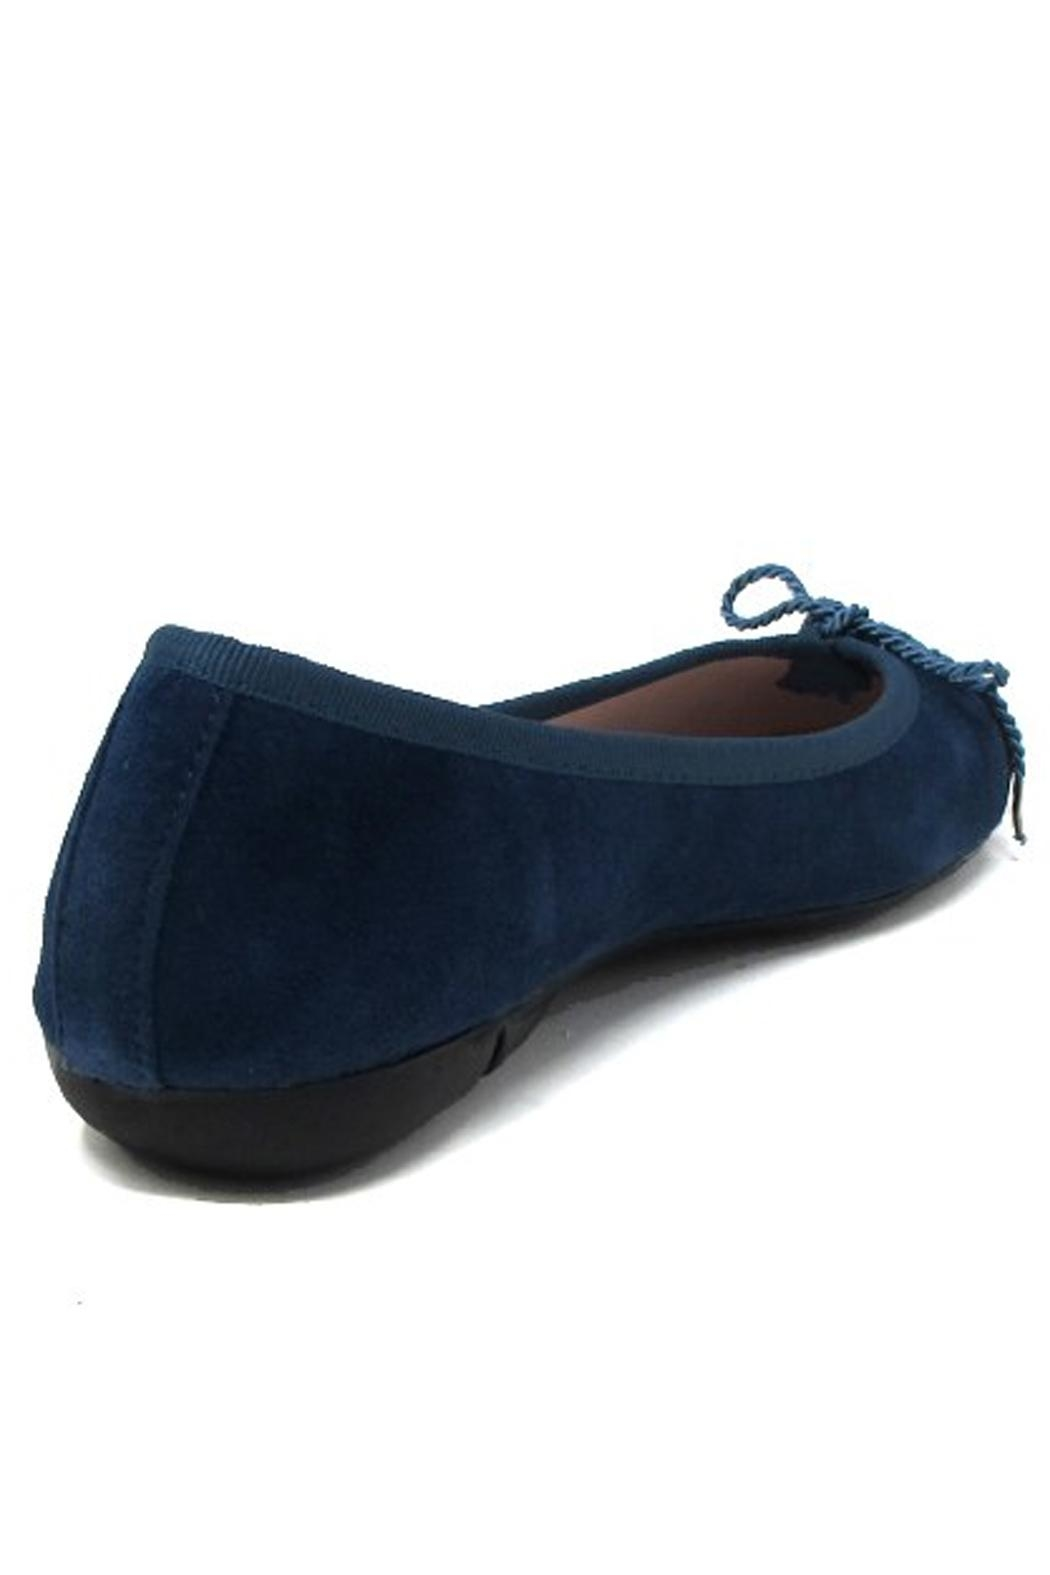 Paul Mayer Blue Suede Flats - Front Full Image